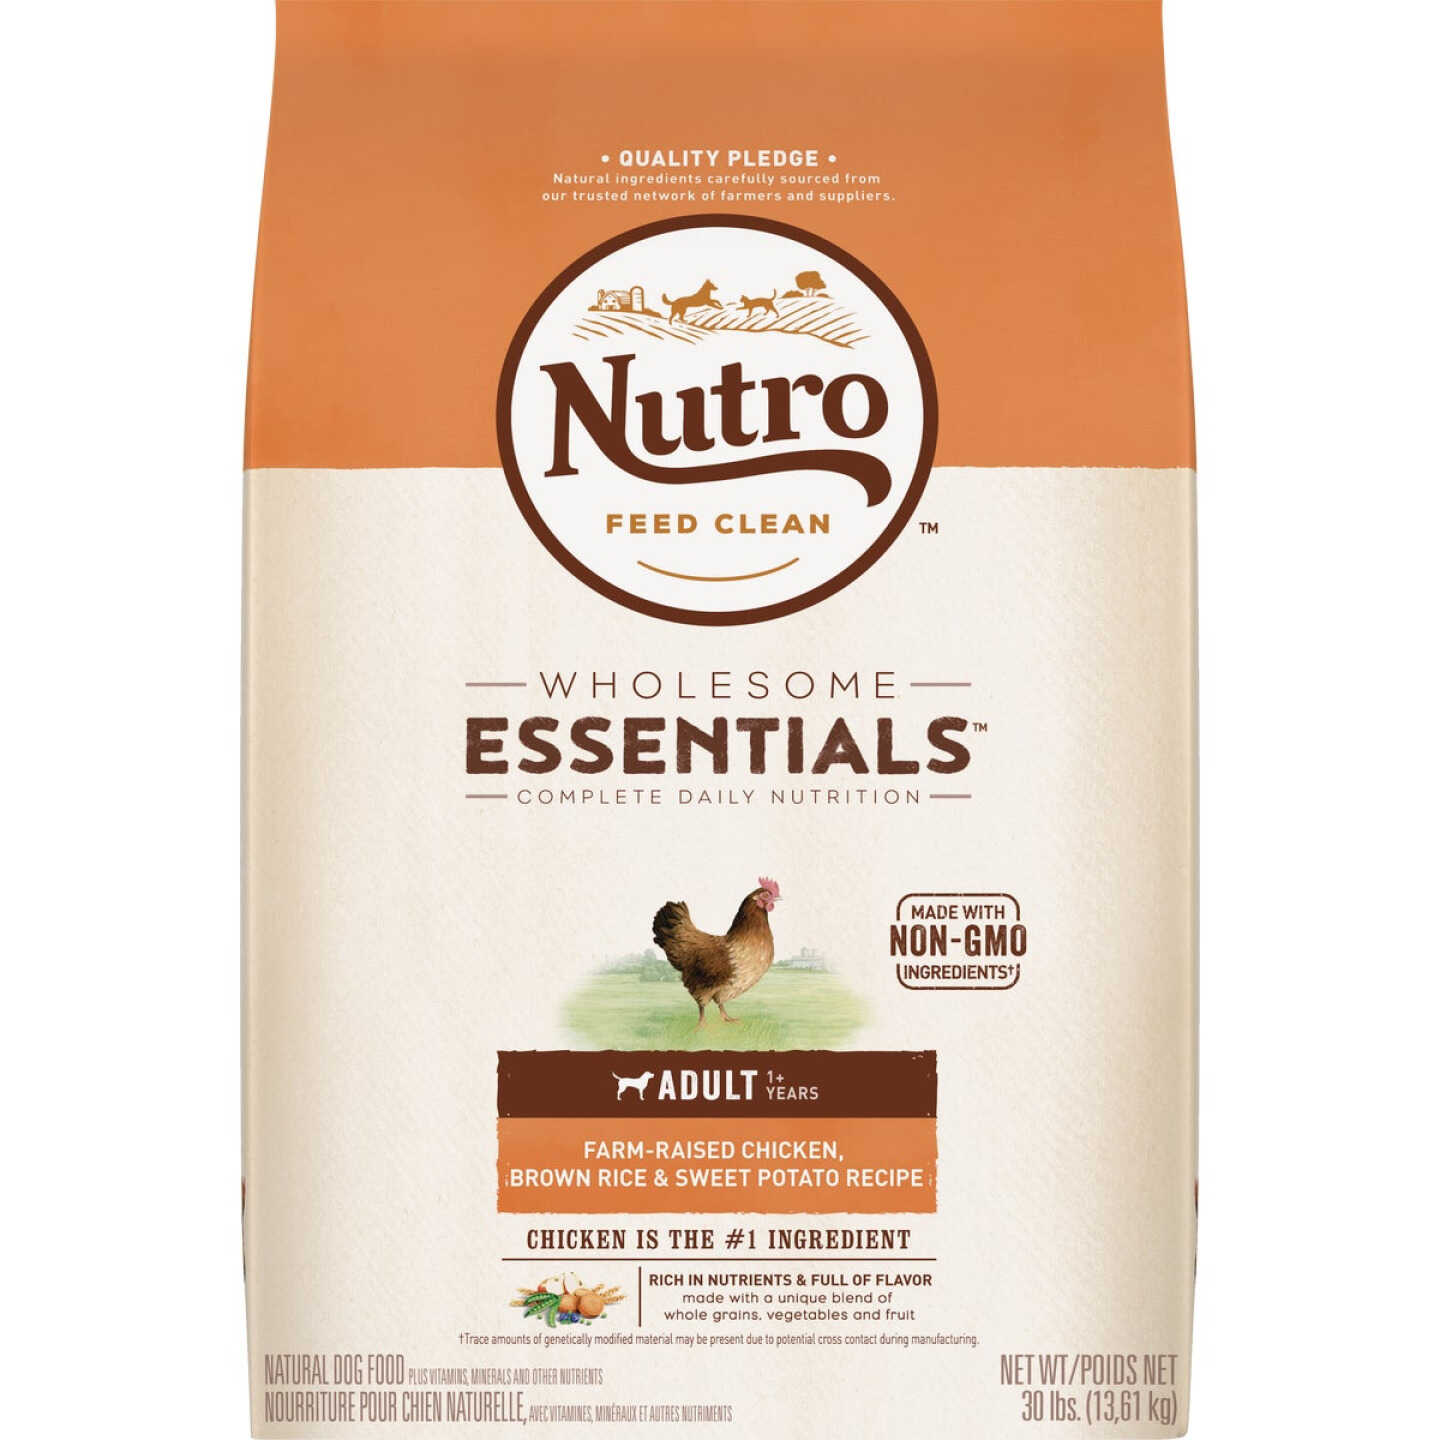 Nutro Wholesome Essentials 30 Lb. Chicken, Brown Rice, & Sweet Potato Adult Dry Dog Food Image 1